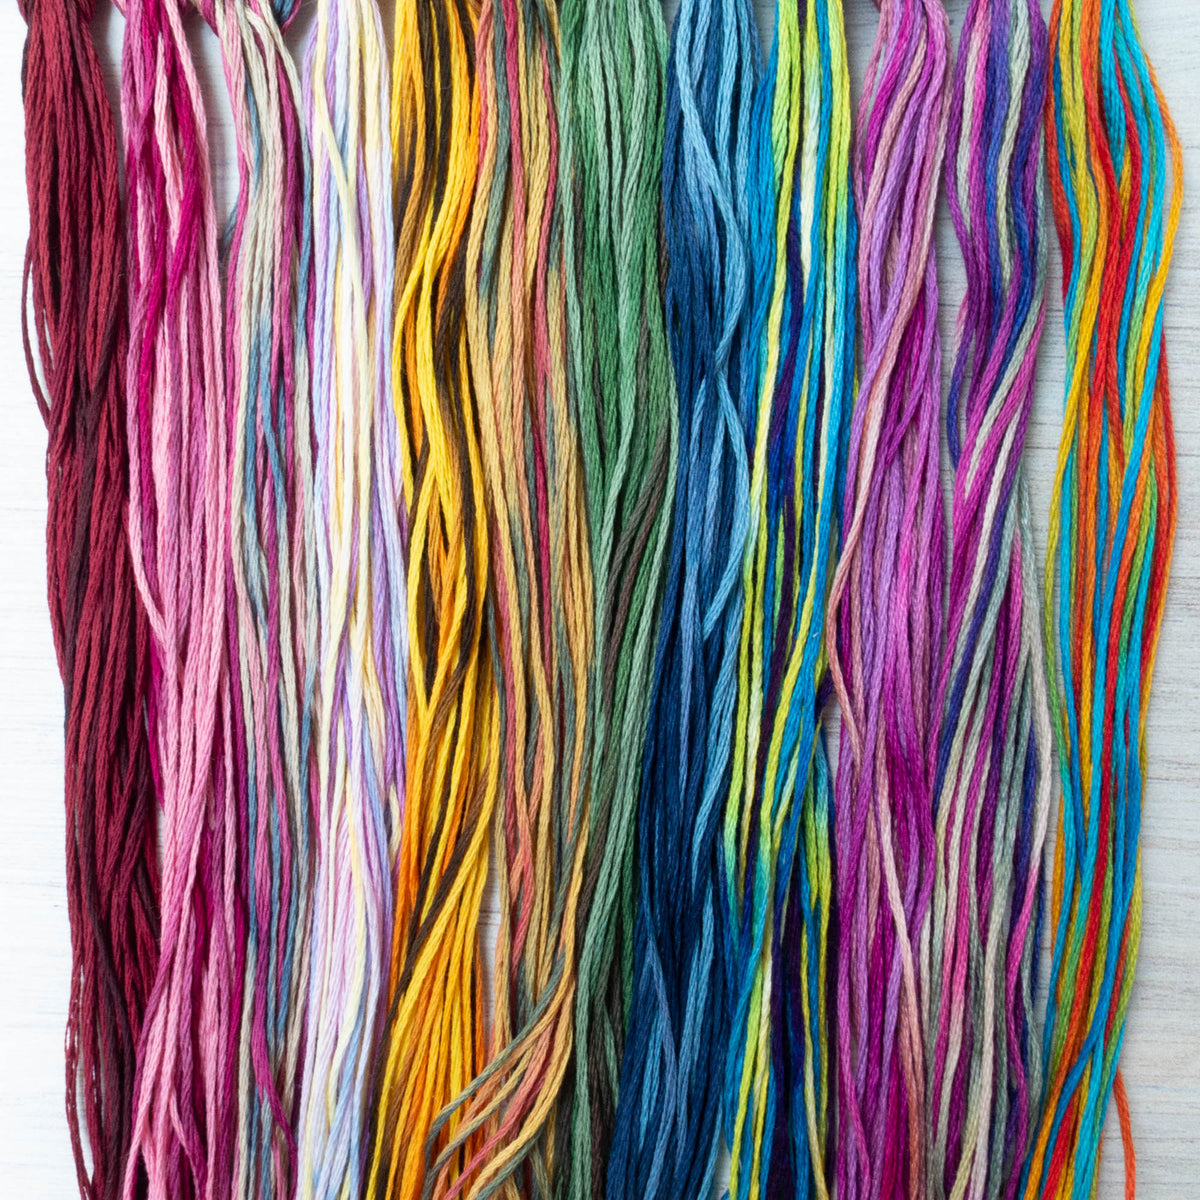 Weeks Dye Works Embroidery Floss Holiday Collection (12 skeins)